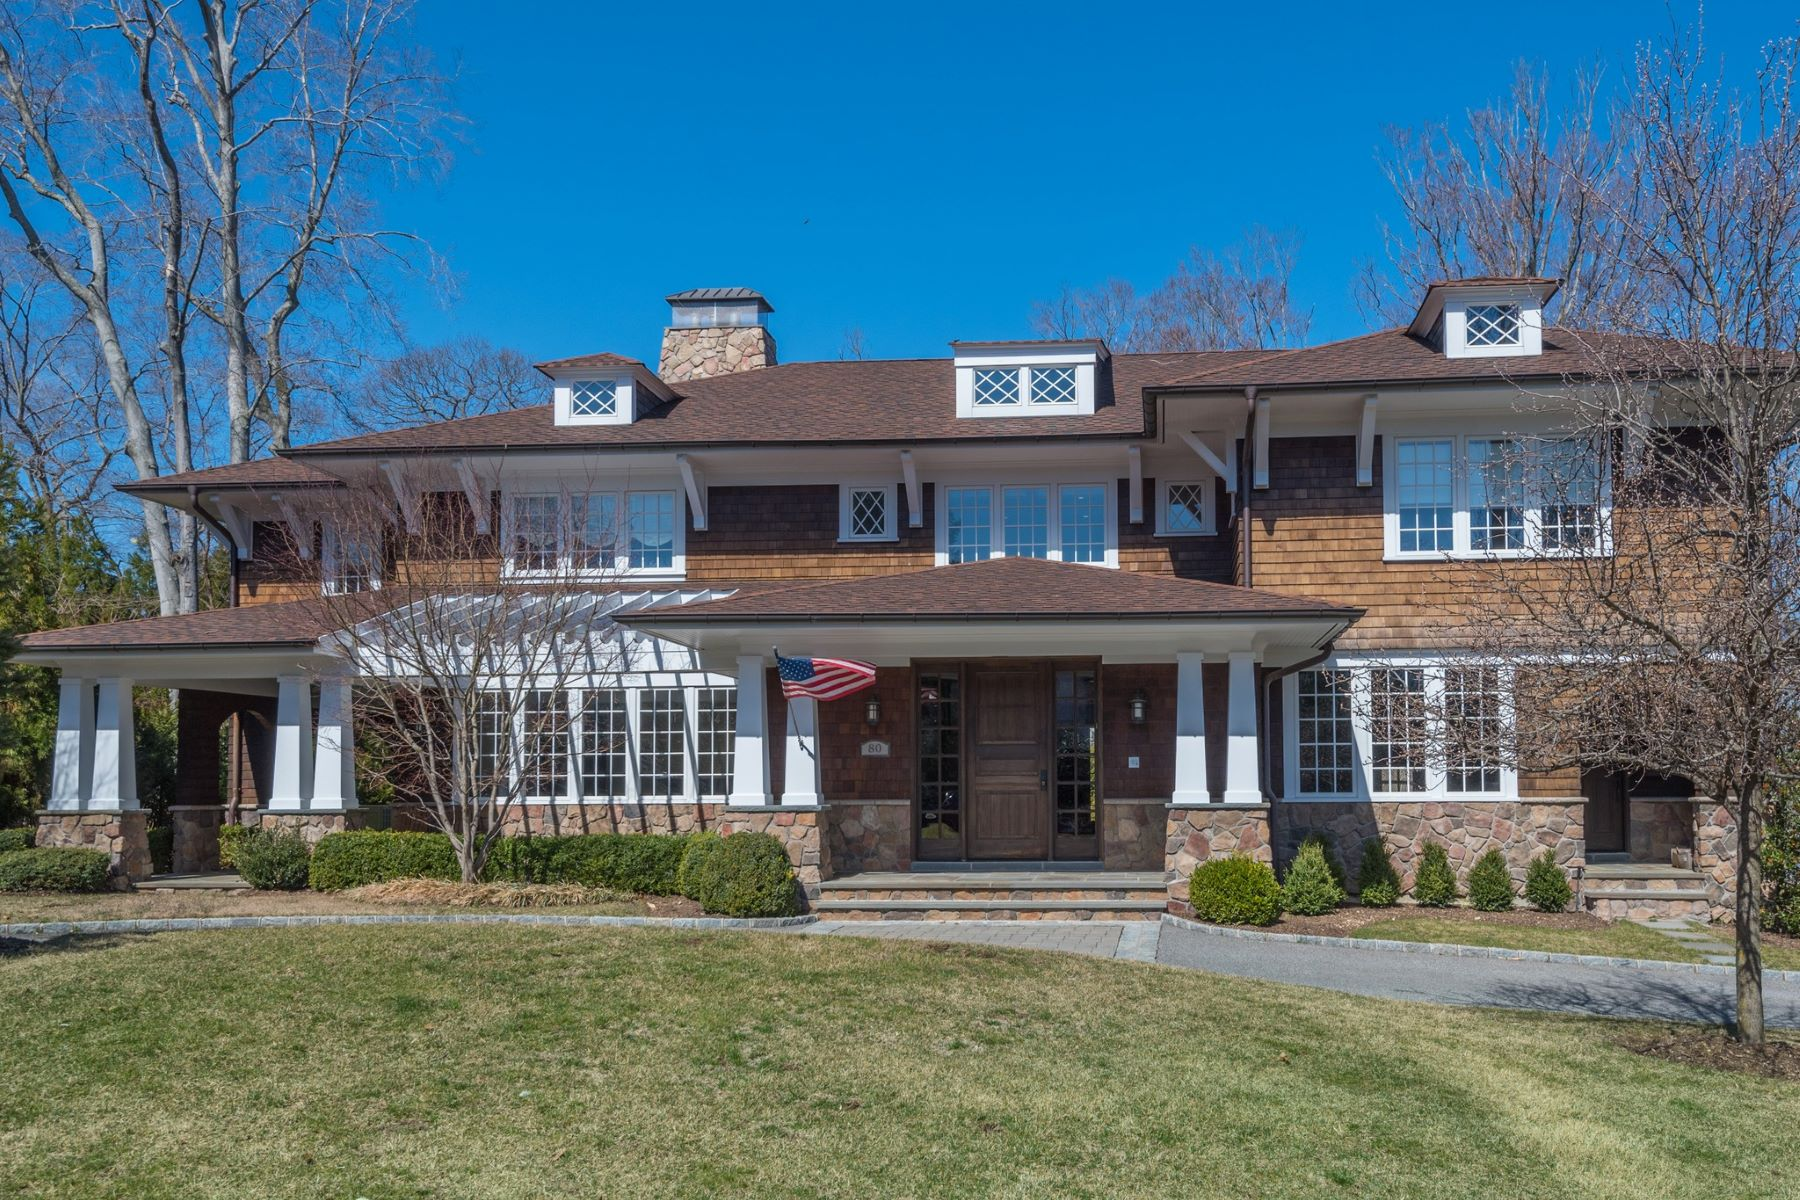 Single Family Homes for Active at 80 Fir Dr East Hills, New York 11576 United States